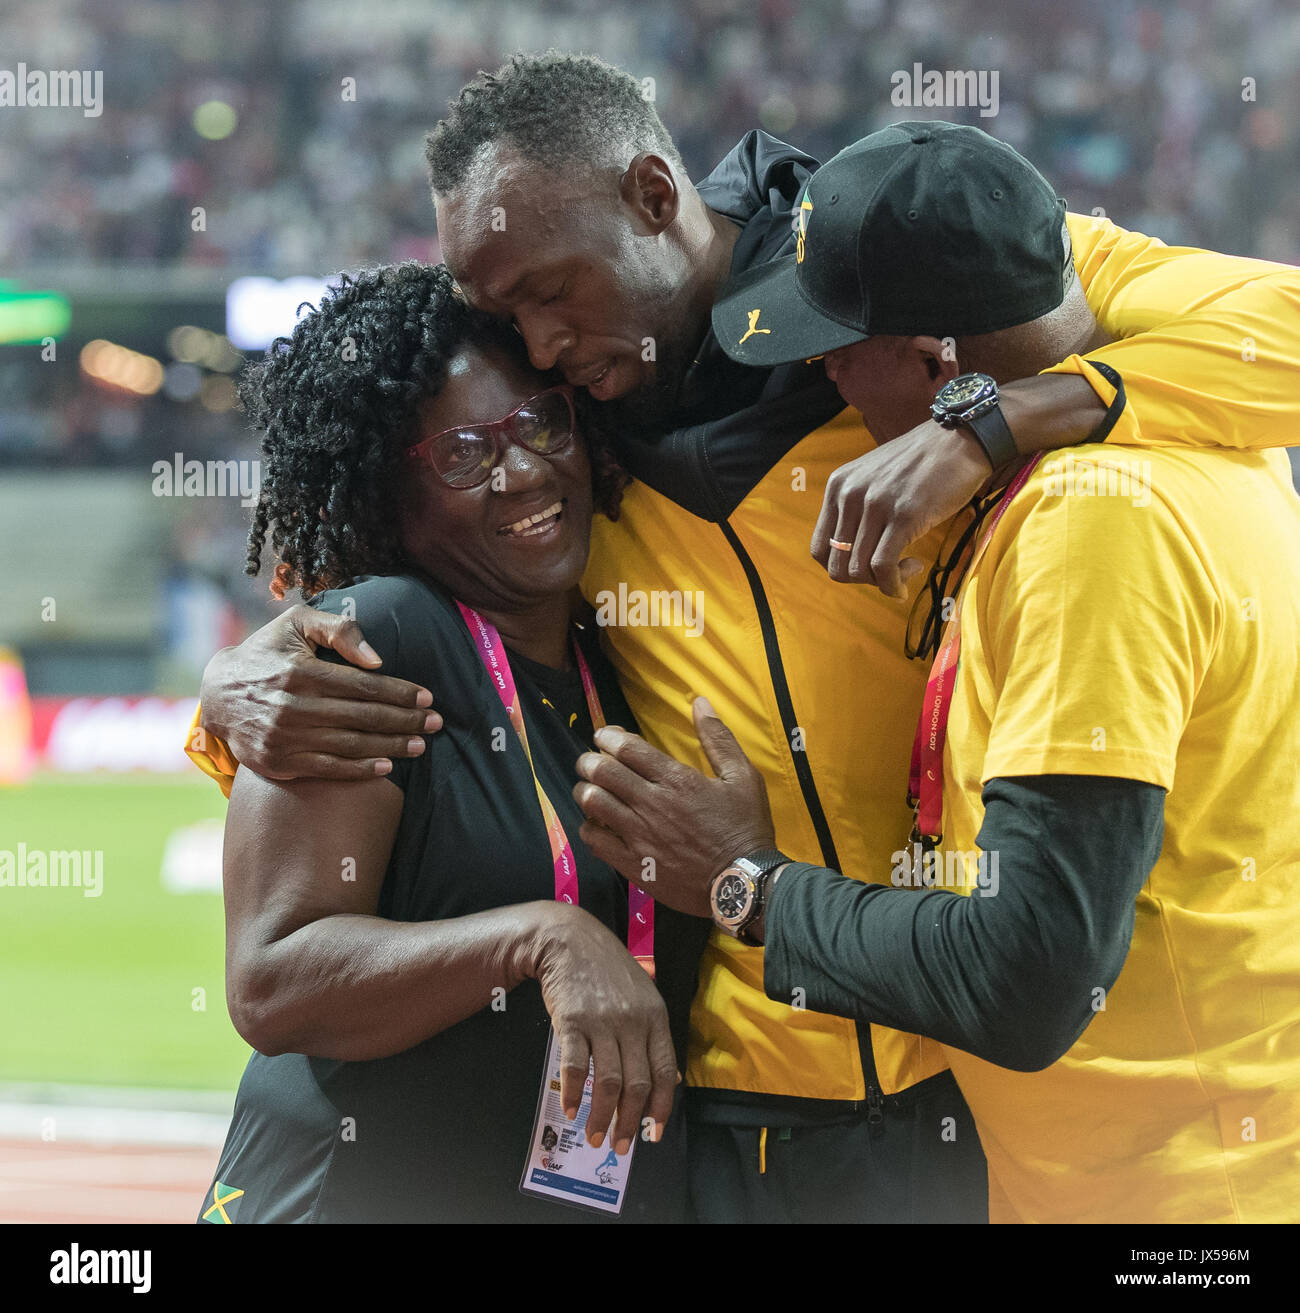 London, UK. 13th Aug, 2017. Usain BOLT with his parents Wellesley and a happy Jennifer Bolt as he bids farewell to the track during the Final Day of the IAAF World Athletics Championships (Day 10) at the Olympic Park, London, England on 13 August 2017. Photo by Andy Rowland/PRiME Media Images. Credit: Andrew Rowland/Alamy Live News - Stock Image